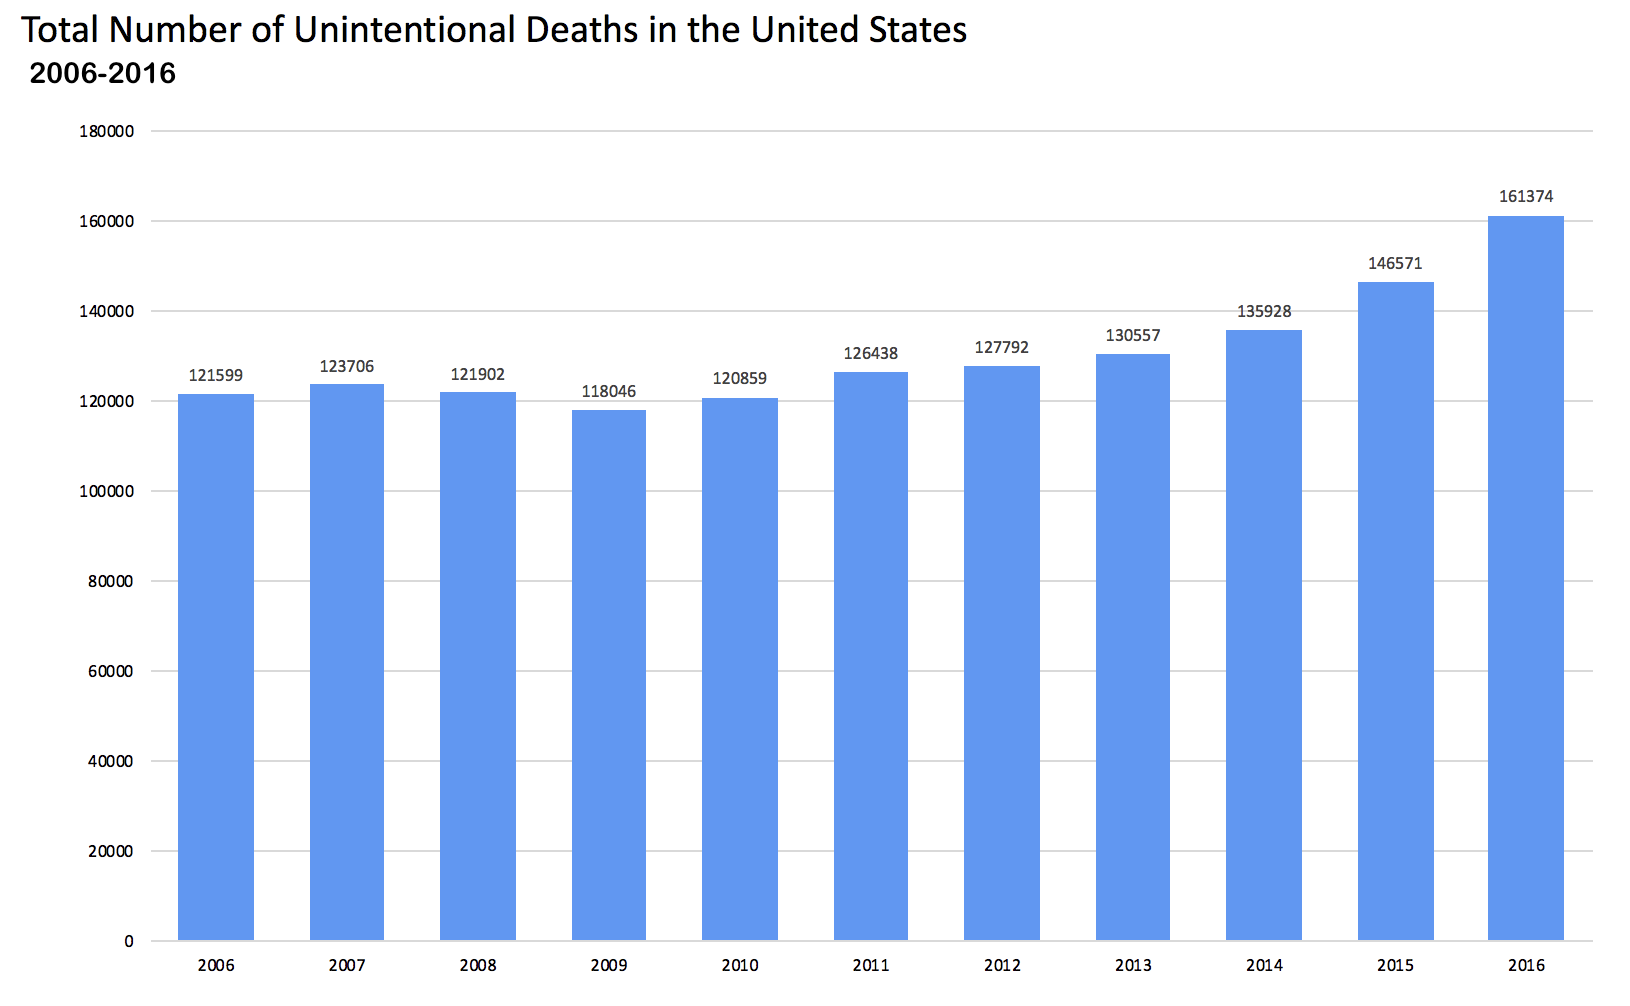 Total Number of Unintentional Deaths in the US